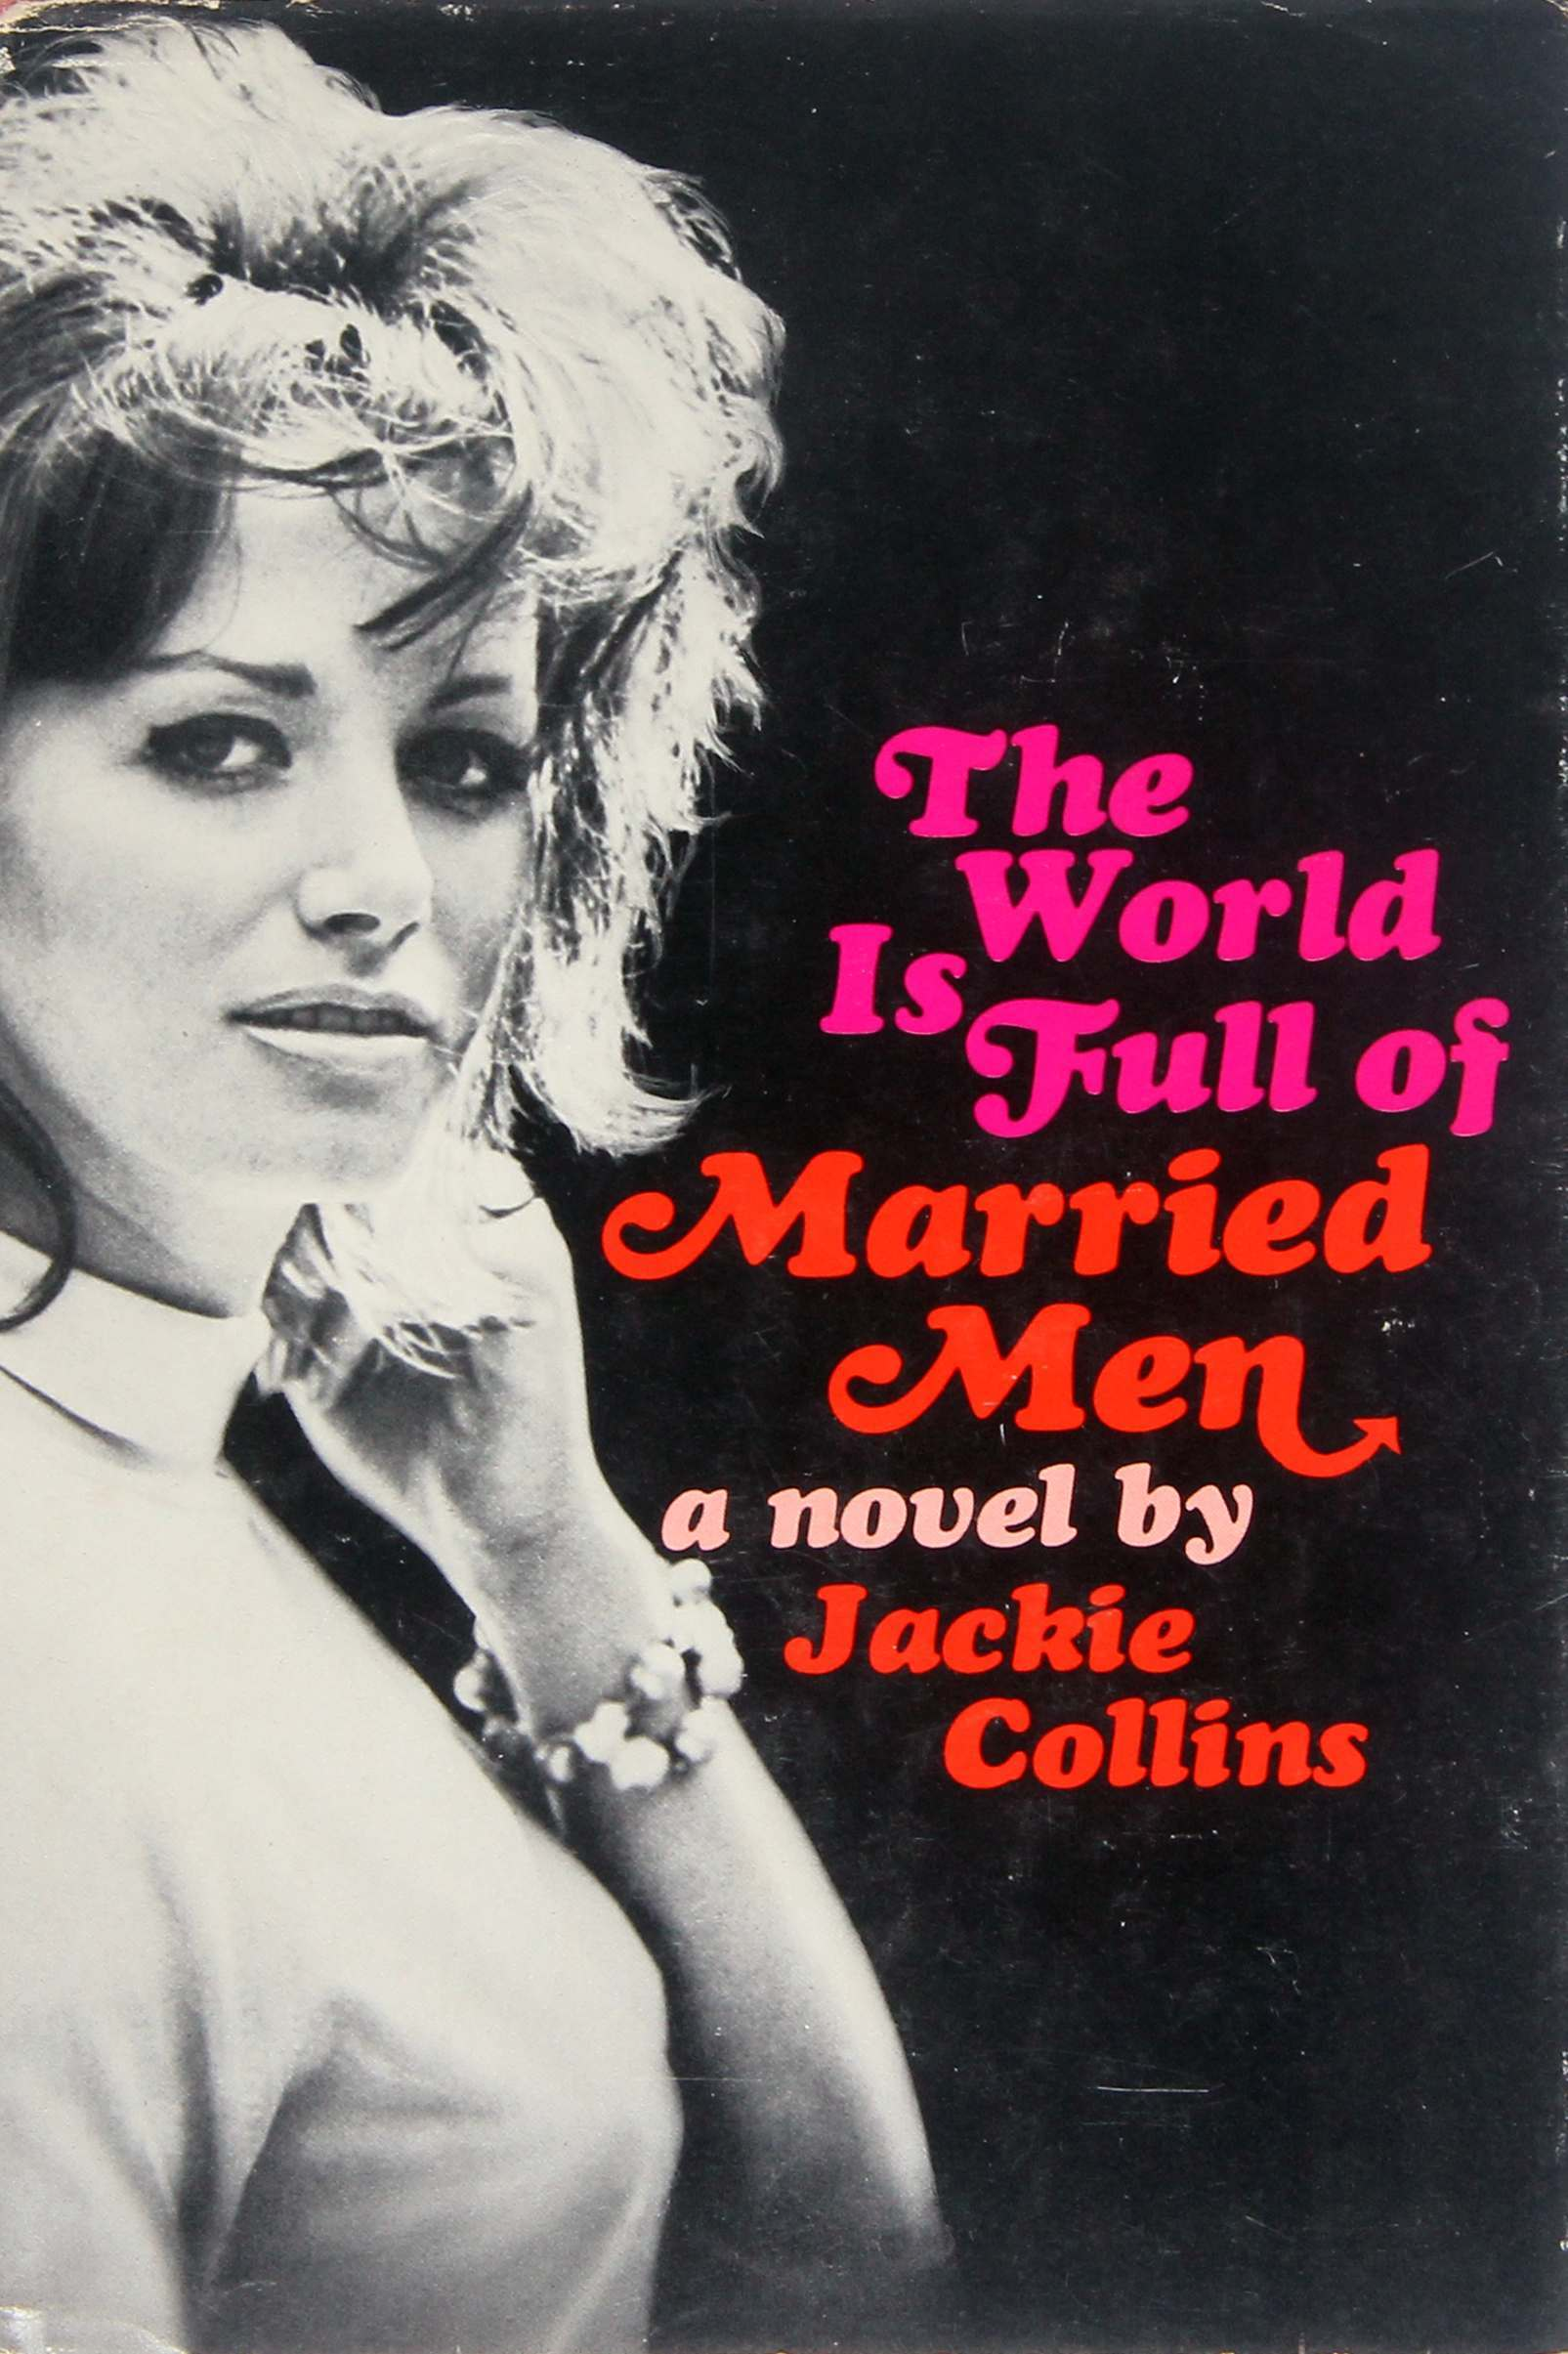 The World is Full of Married Men, 1968.